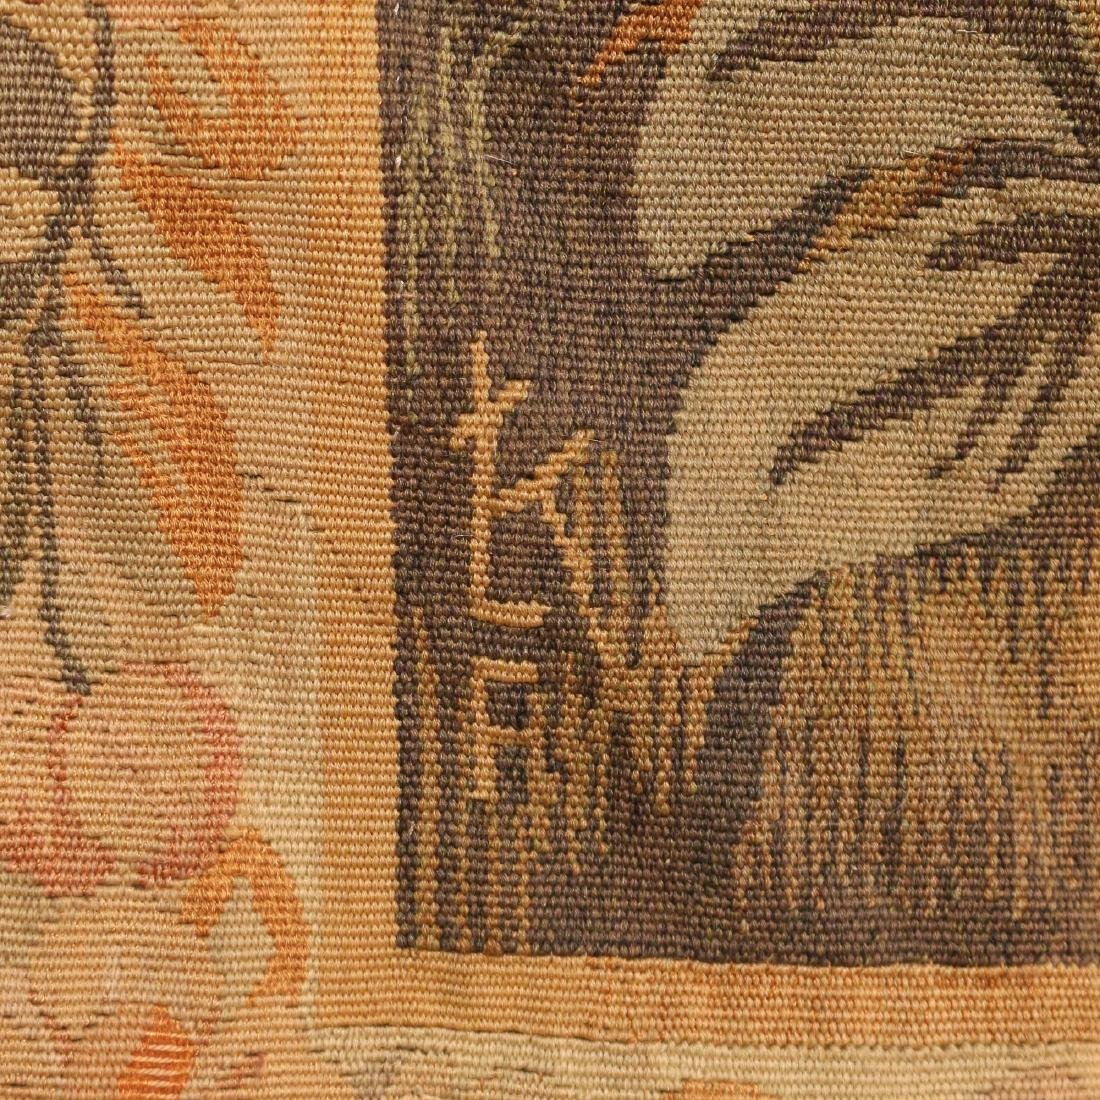 19th C. AUBUSSON TAPESTRY - 2